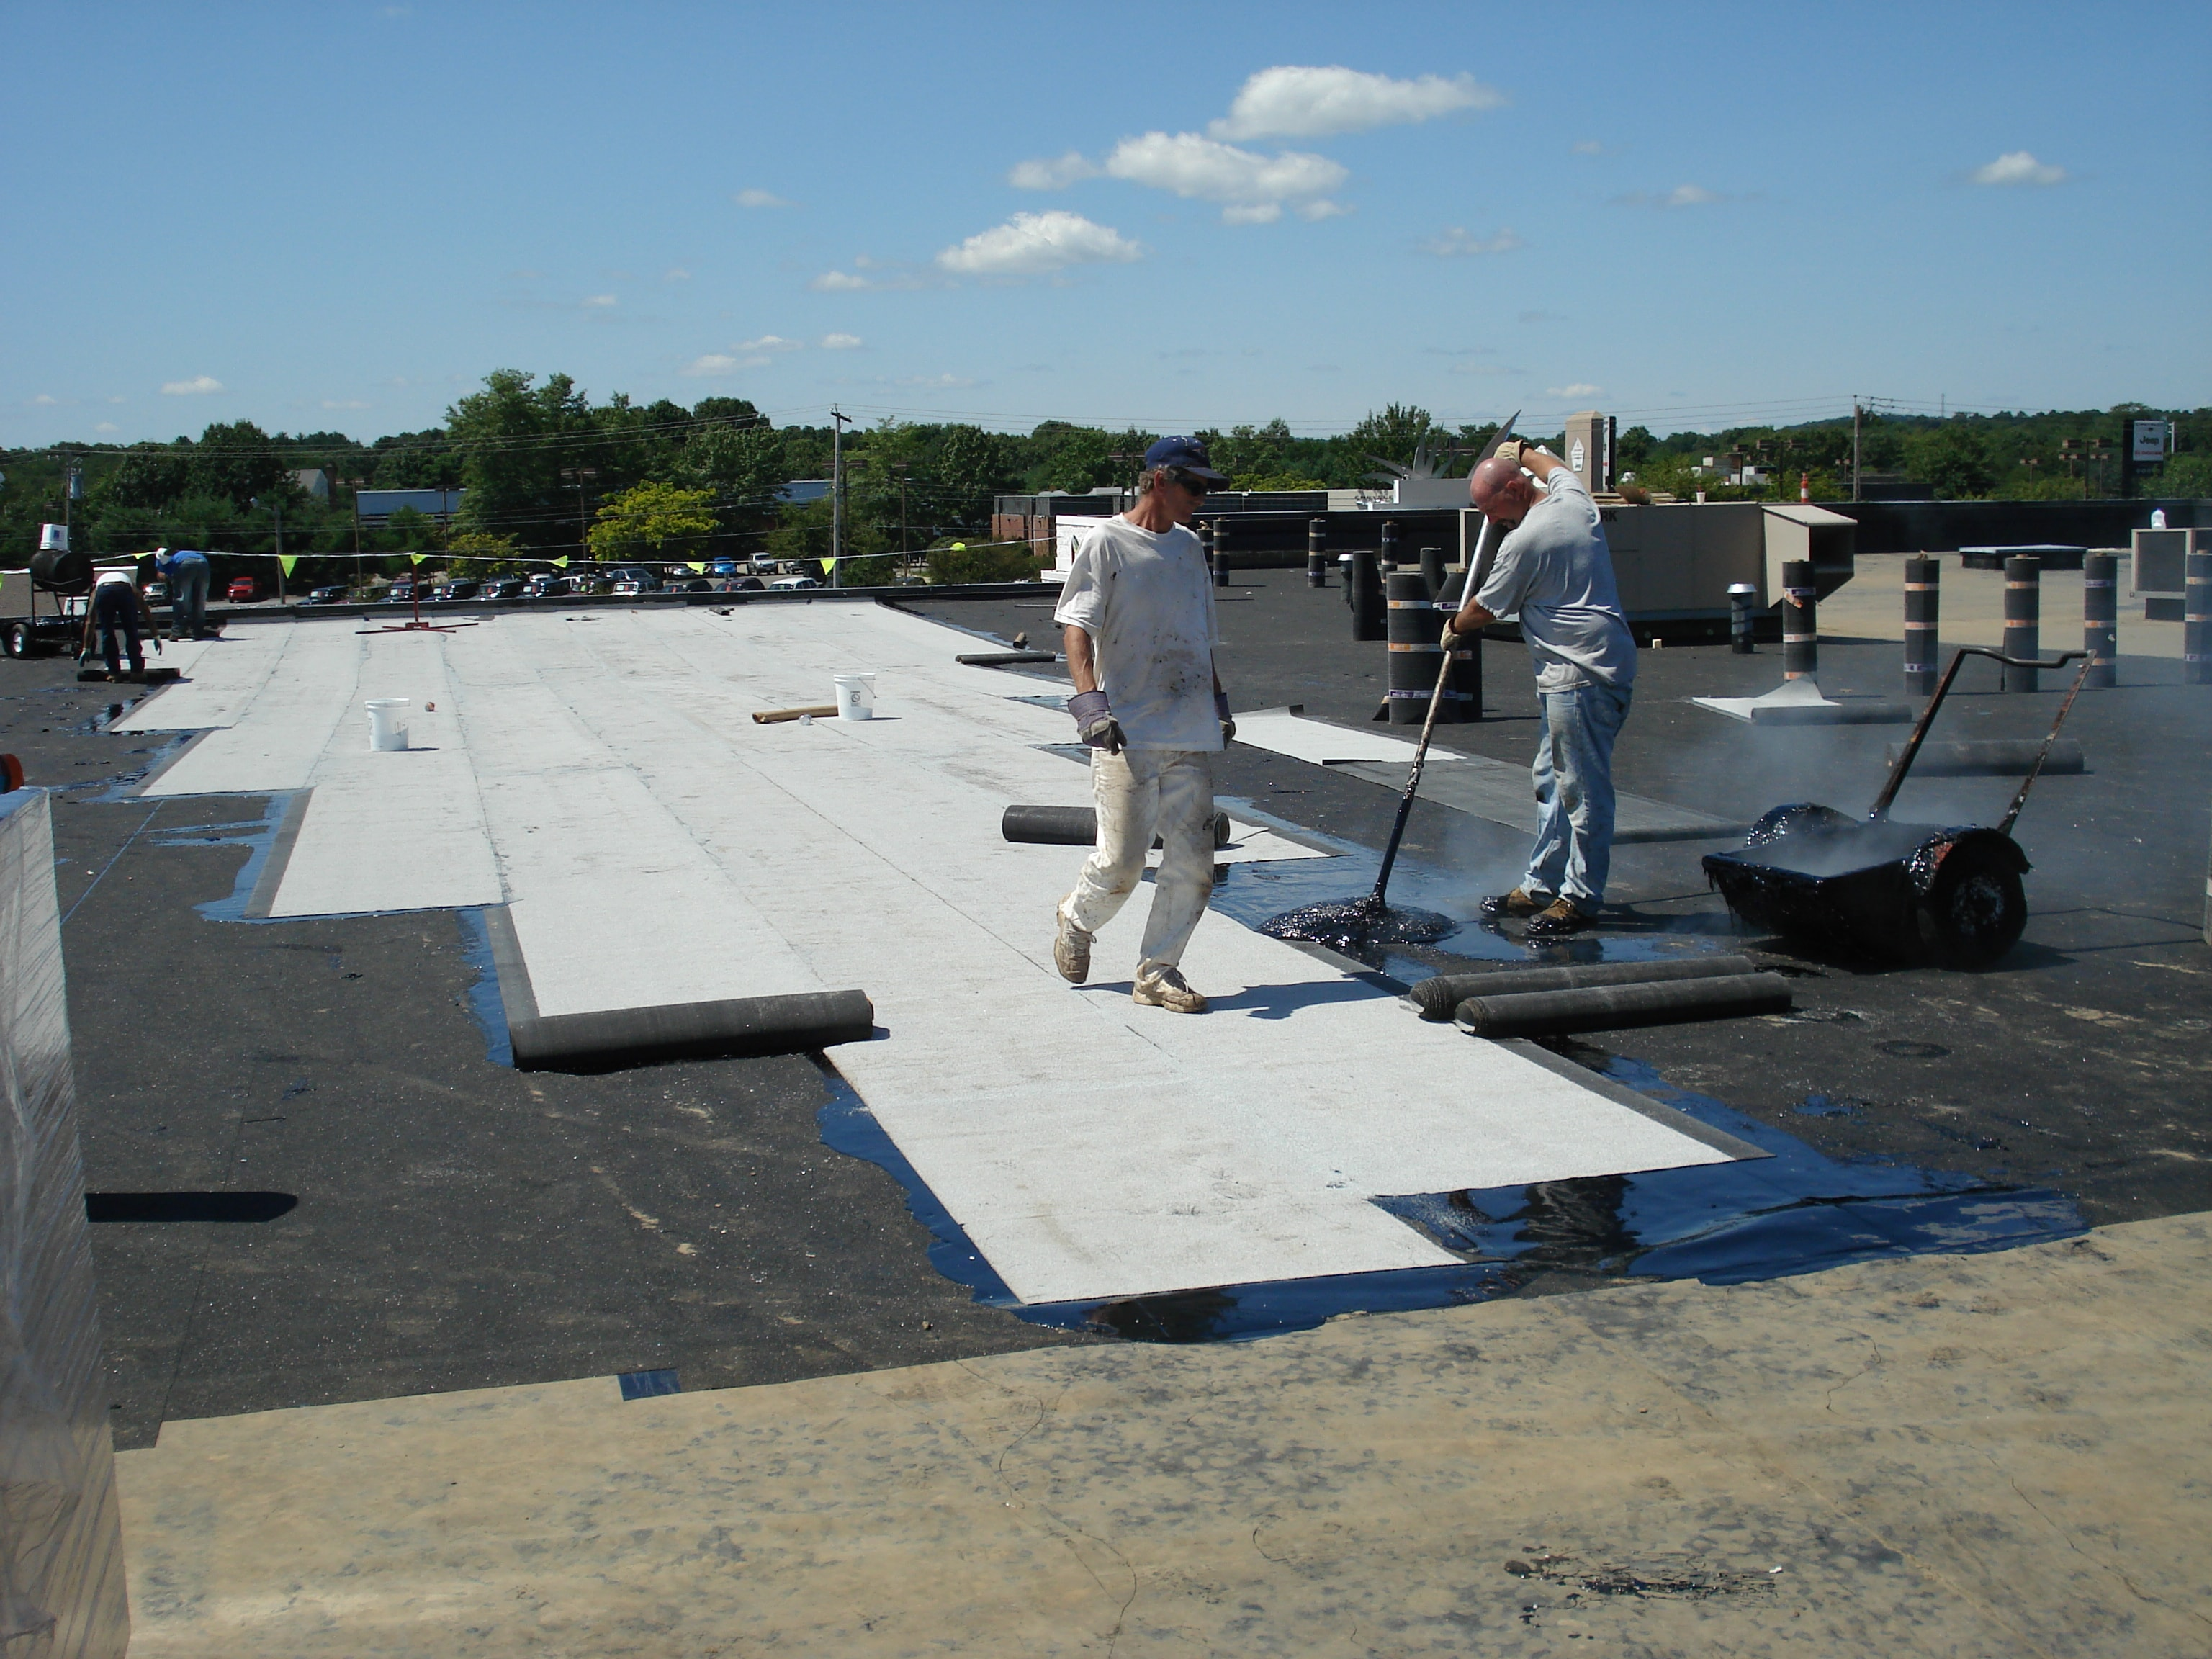 bitumen systems pared chaffee industrial roofing